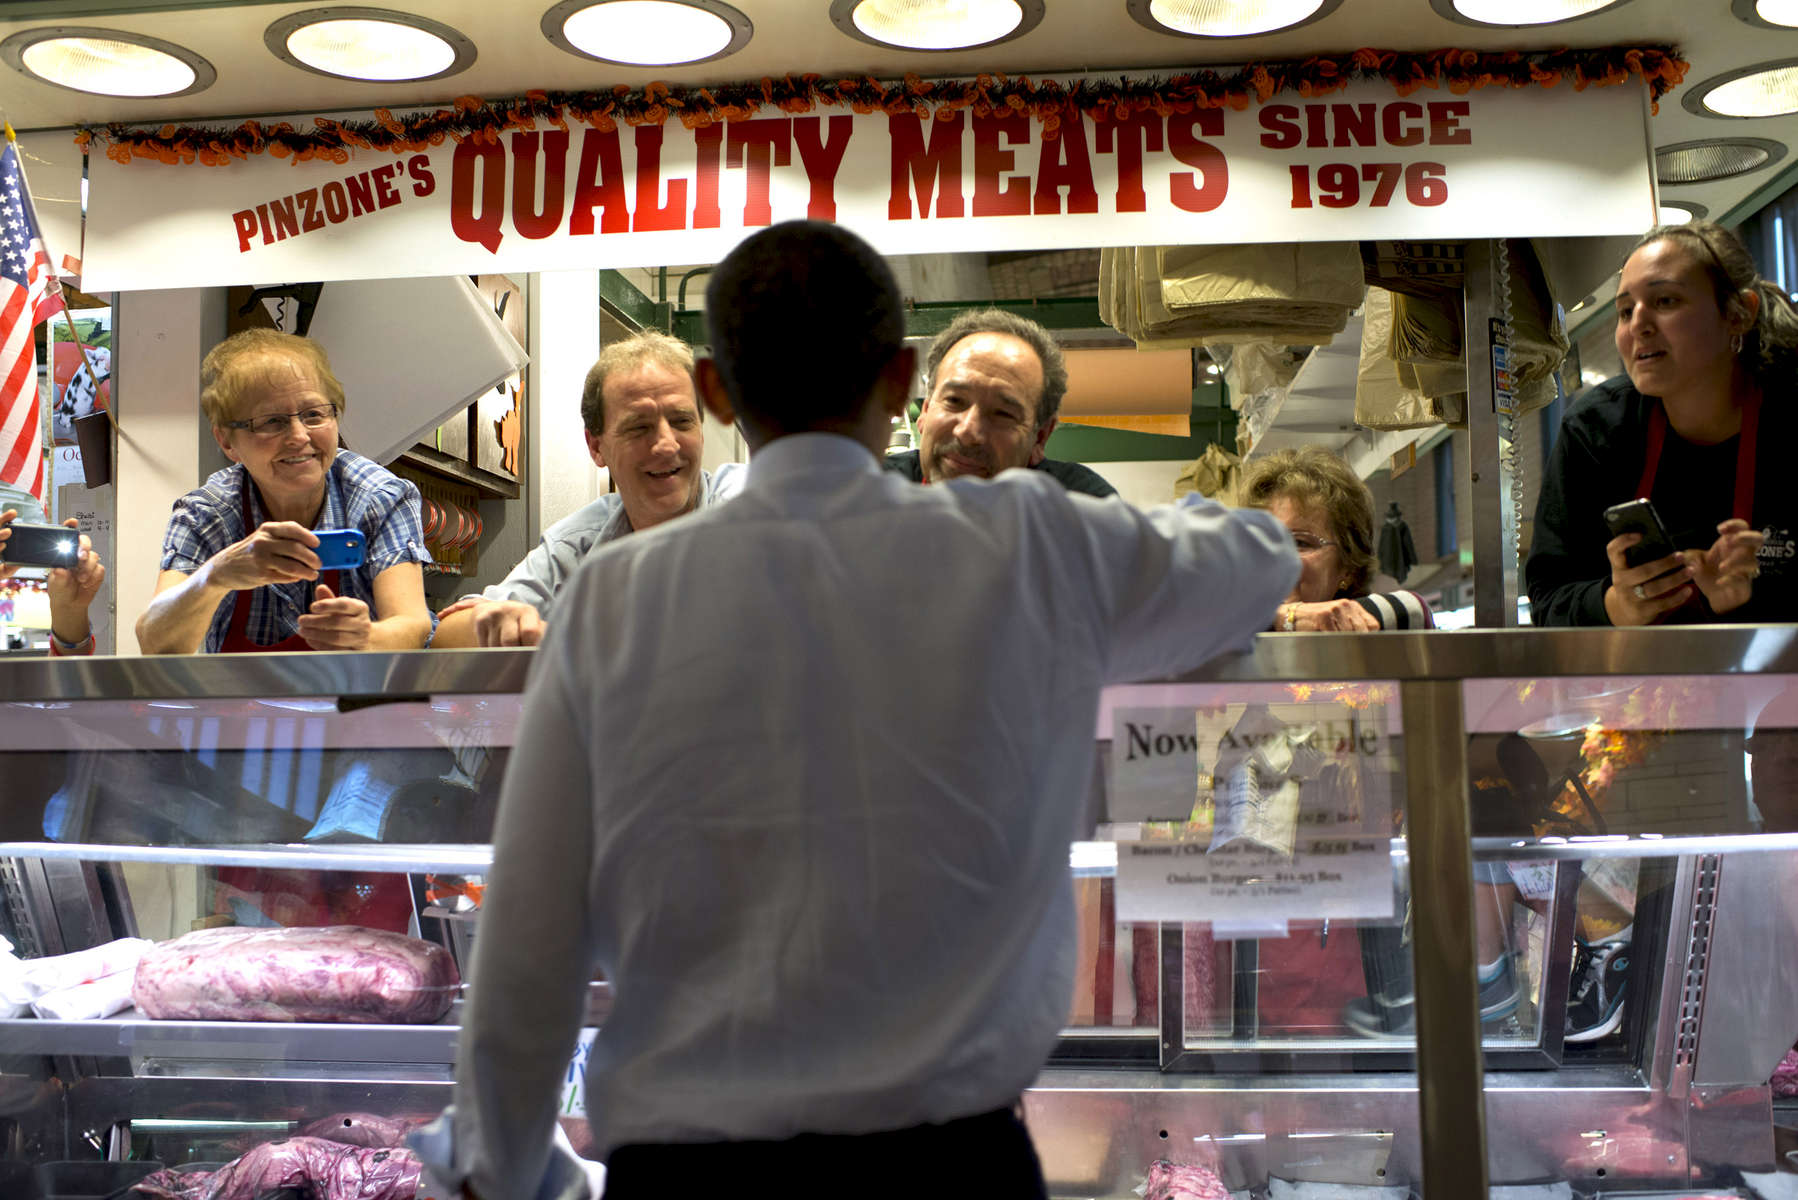 October 5, 2012 - Cleveland, OH- President Barack Obama chats with the proprietors of Pinzone's Quality Meats during a visit to the Cleveland West Side Market Cleveland, OH.  (Scout Tufankjian for Obama for America/Polaris)